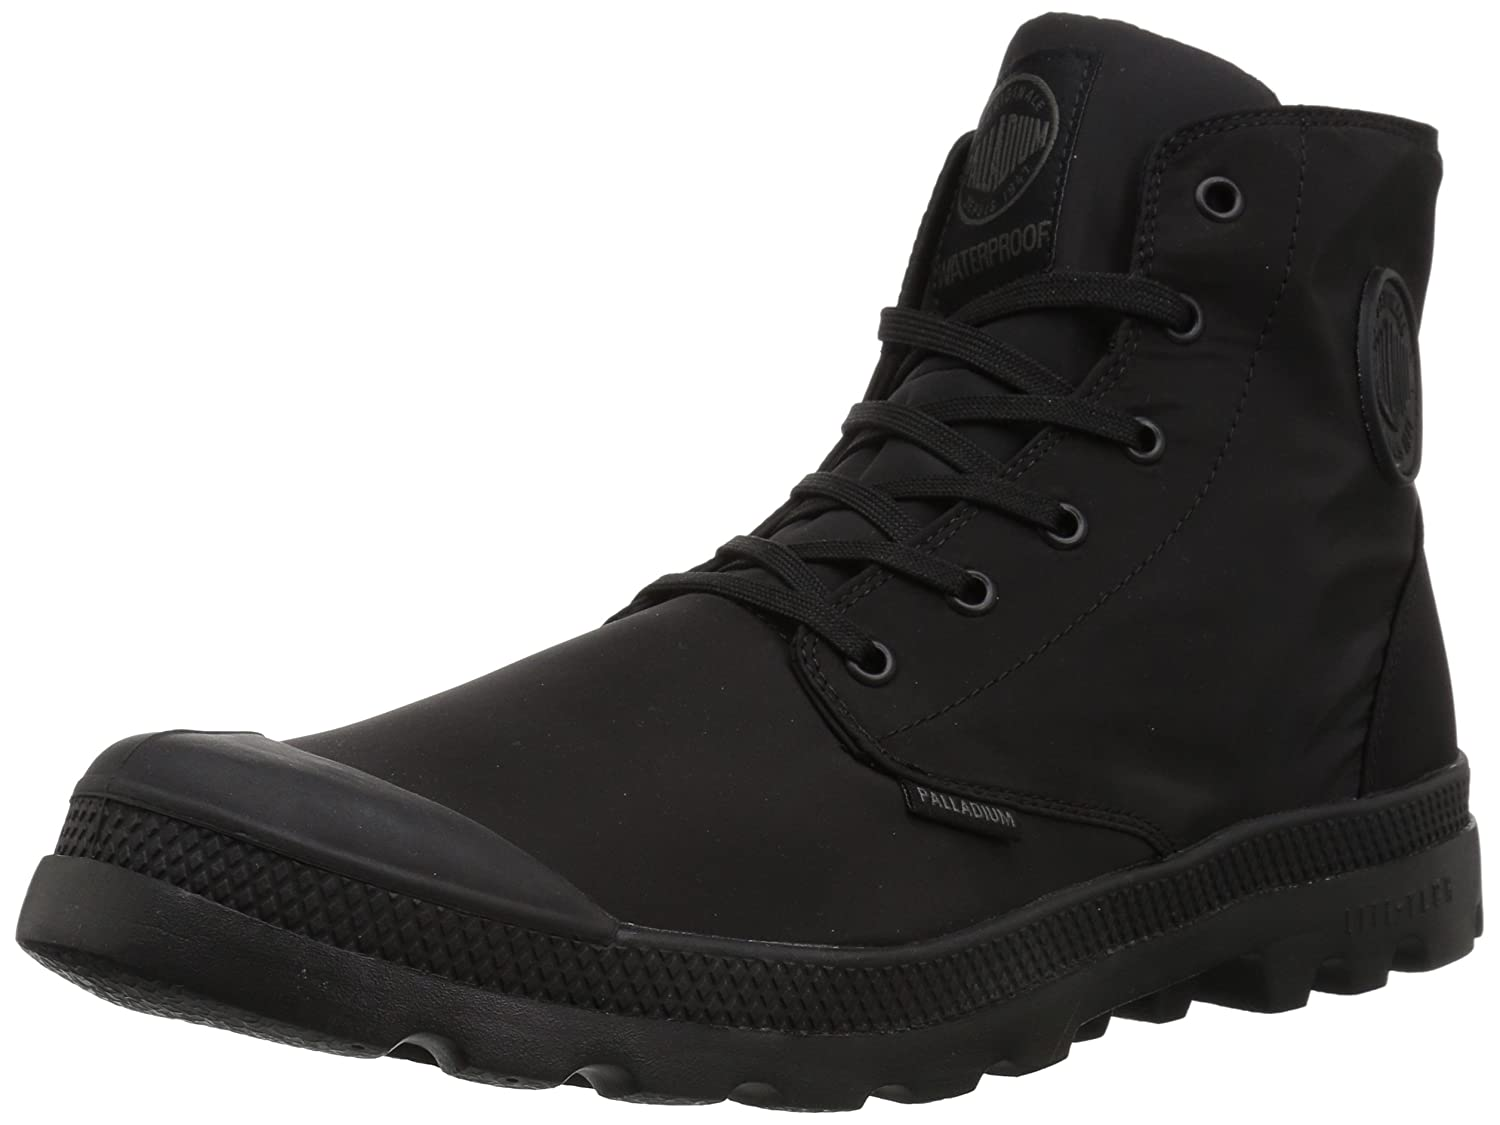 Palladium Puddle Ankle Boot B01MR56E5P 5 M US|Black